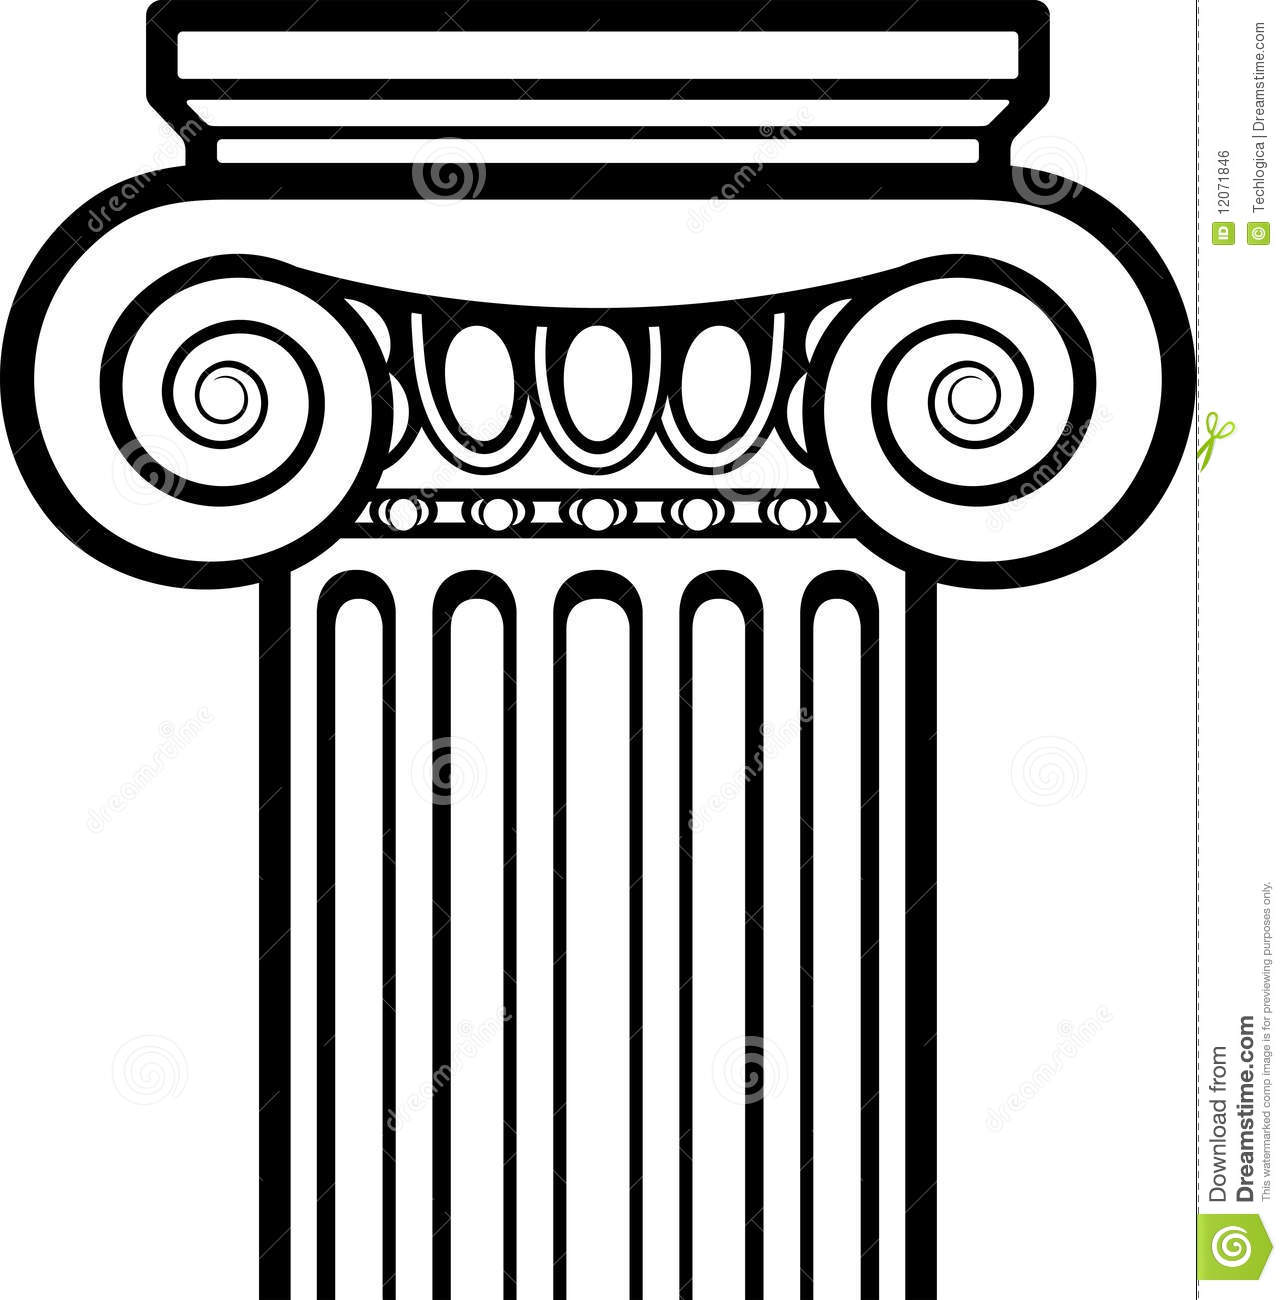 Architecture clipart greek column Una Searching columna dibujar griega